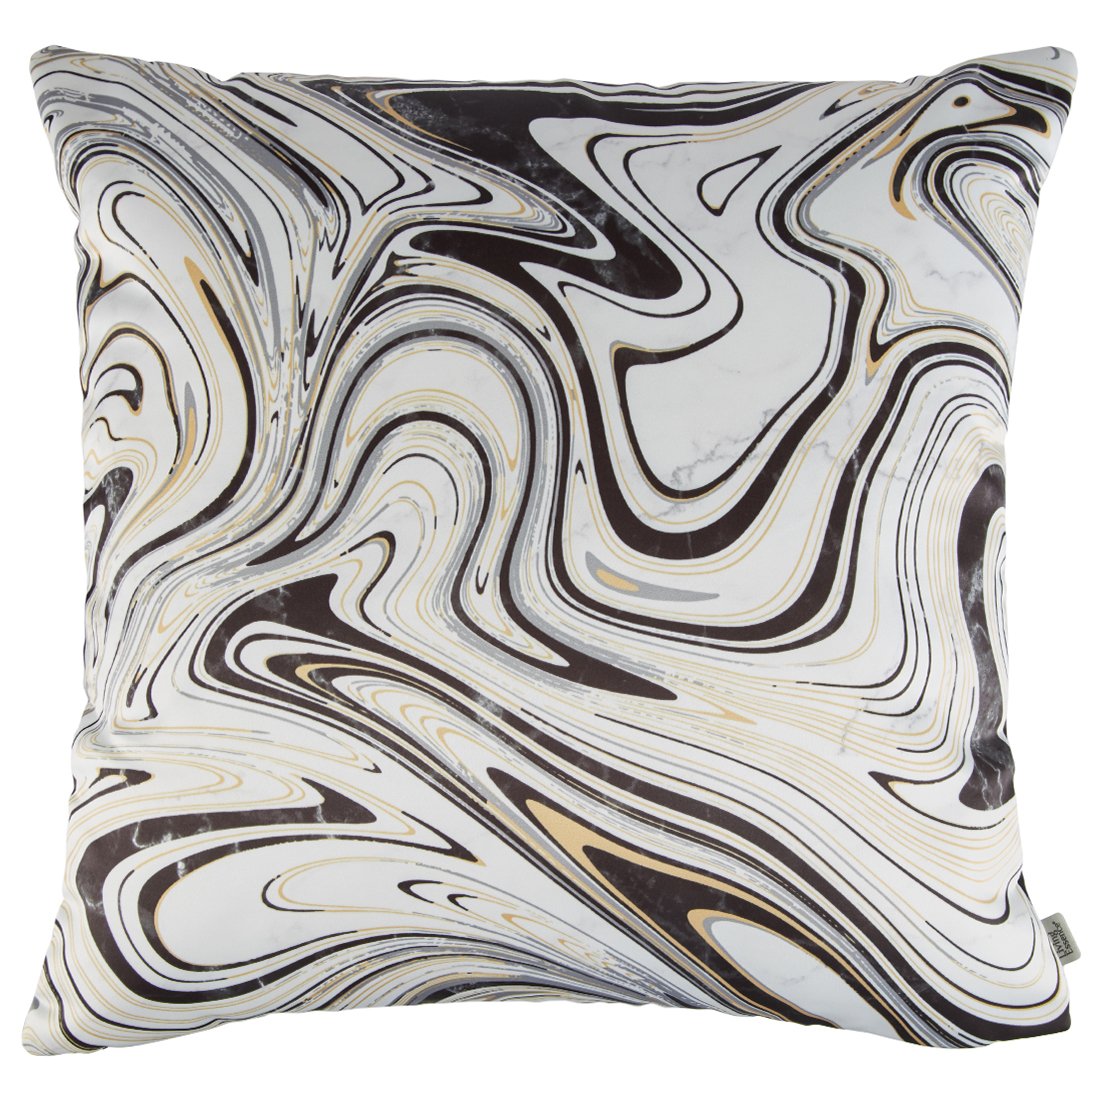 Digital Cushion Cover Marble Cushion Covers in Poly Satin Colour by Living Essence